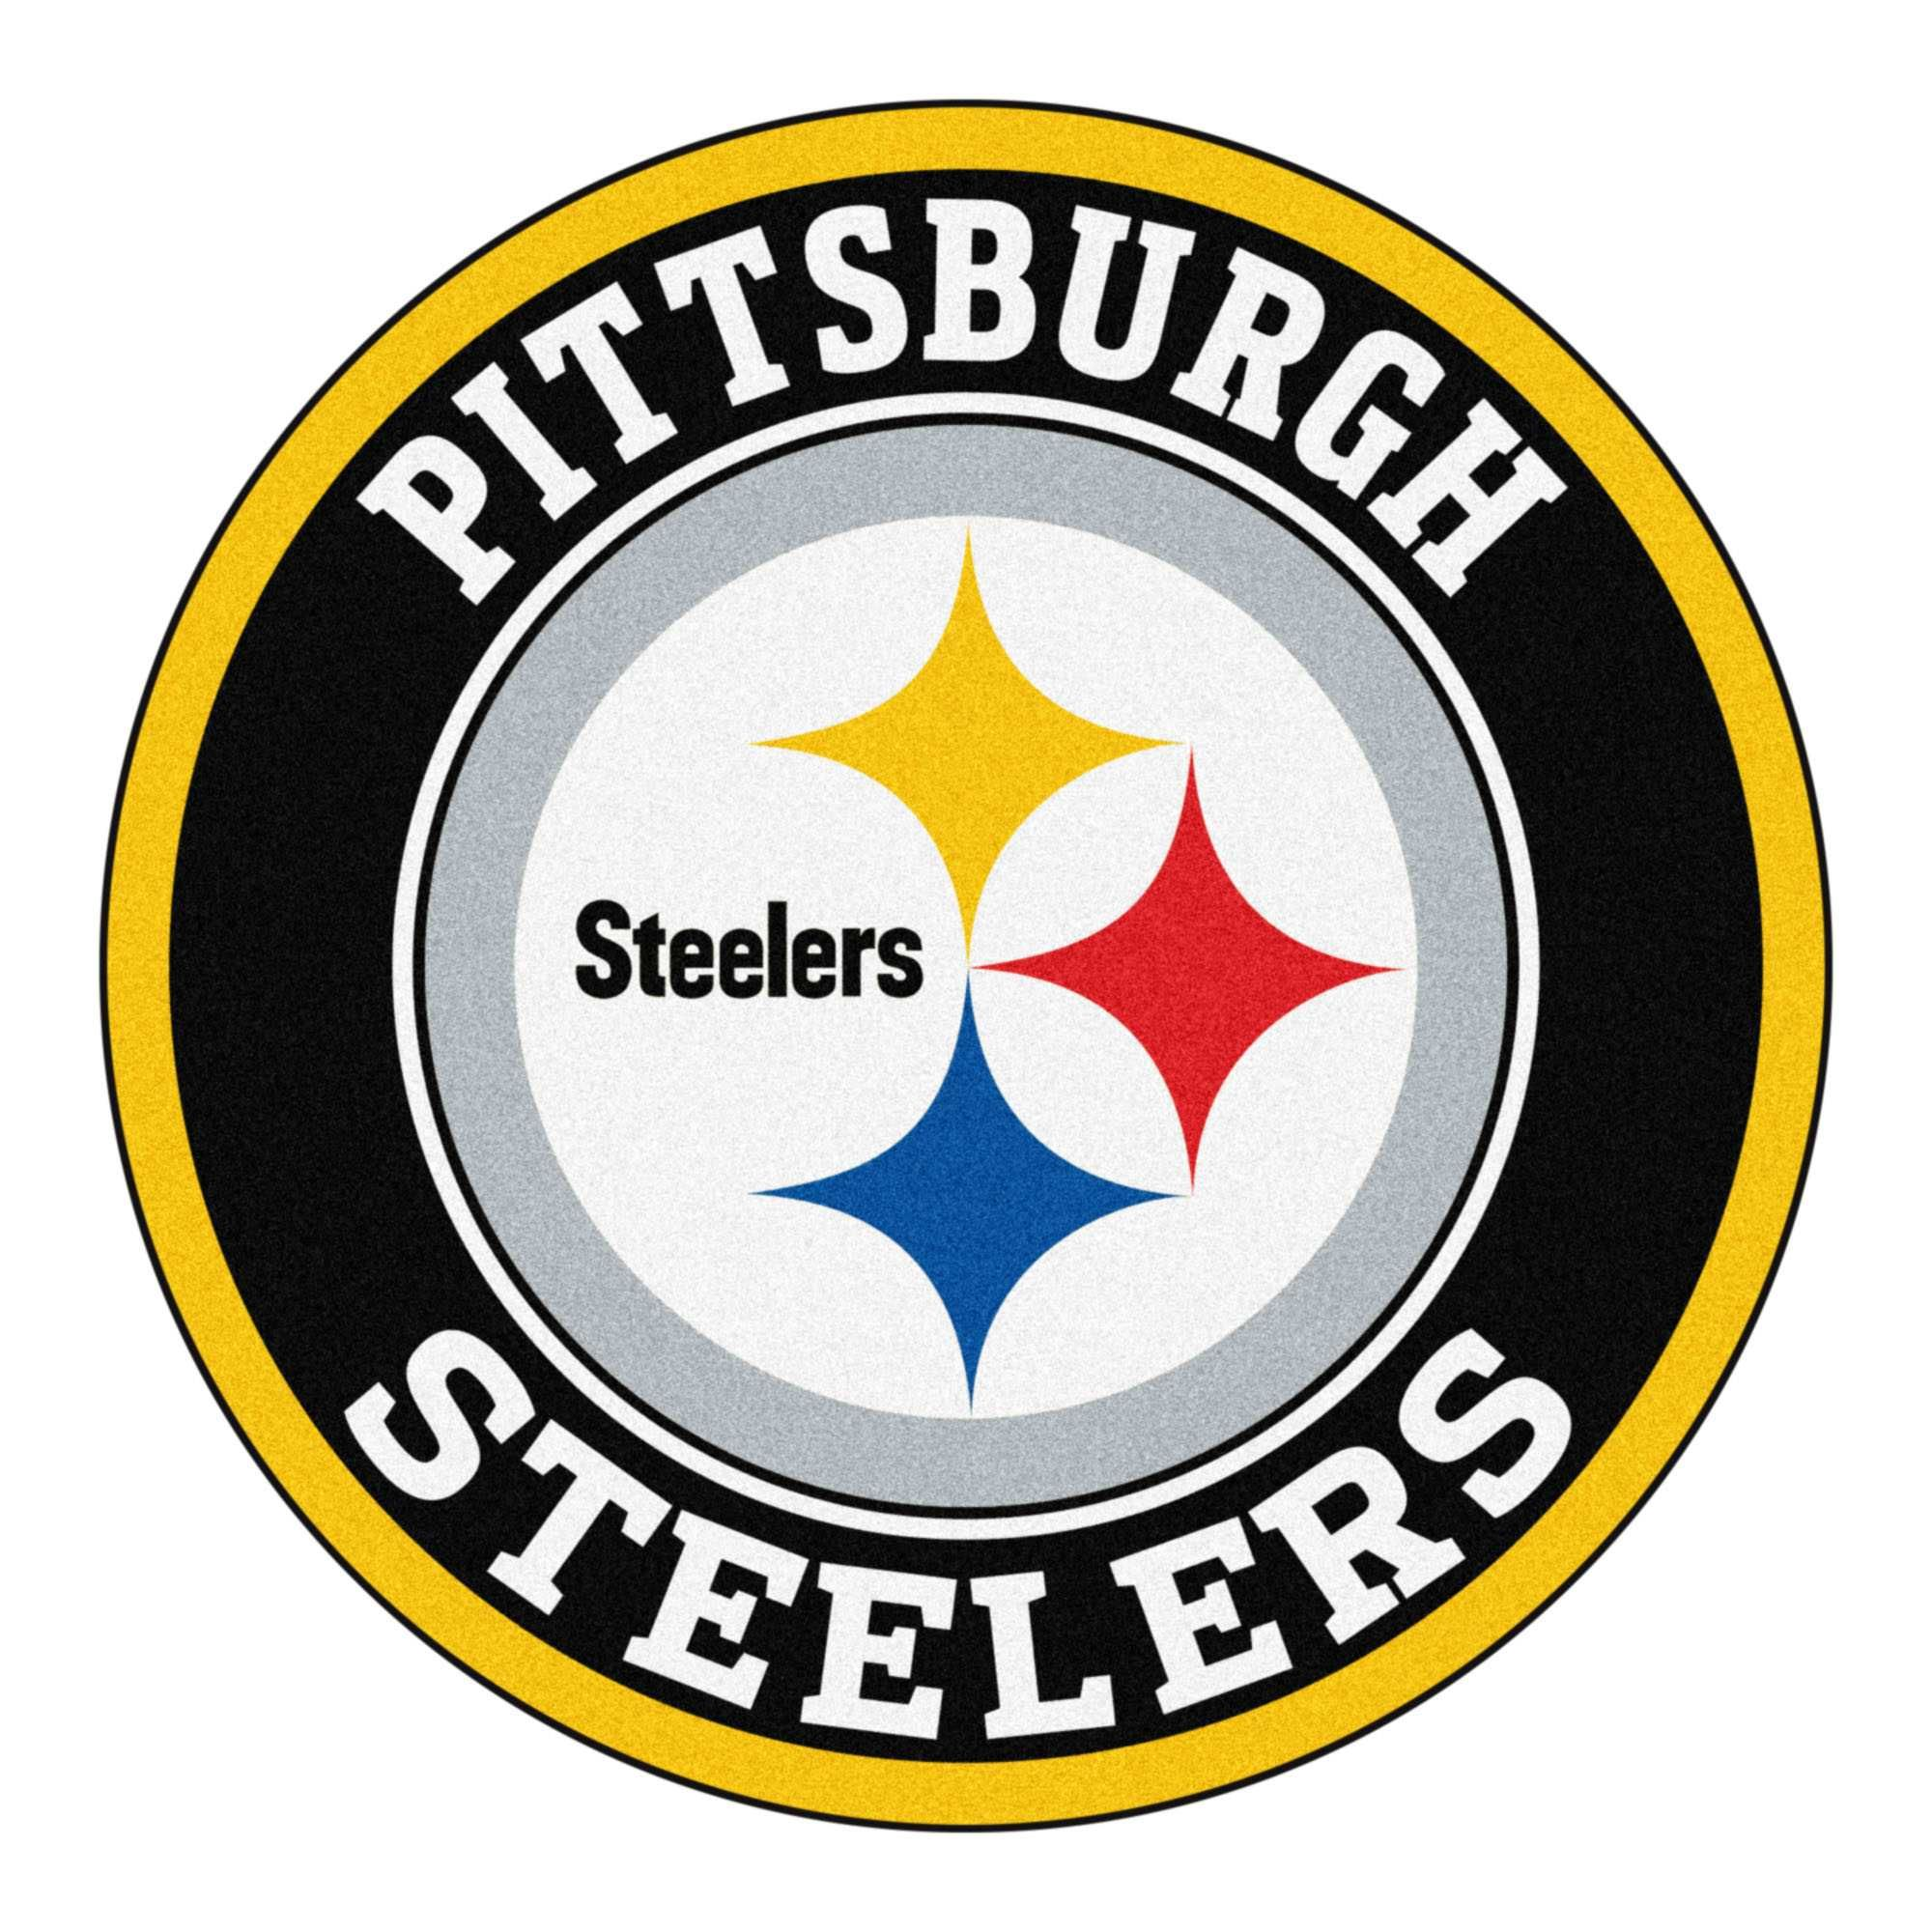 Pittsburgh Steelers Logo Images Hd Full Image Gallery For